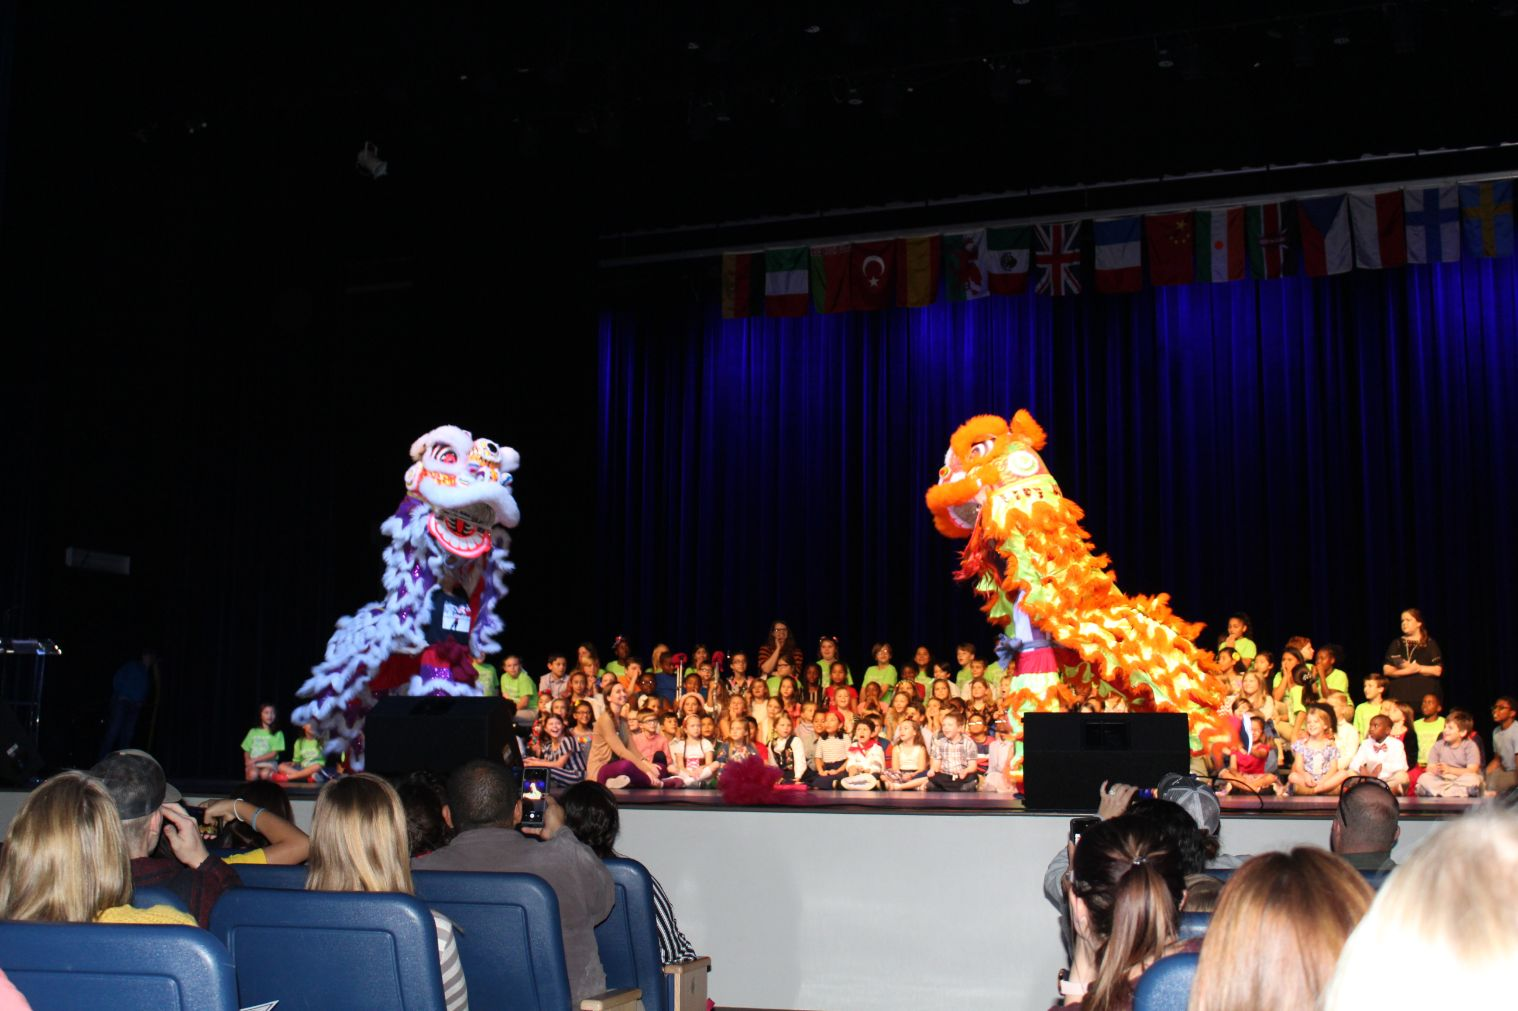 Dancers perform the Twin Lions dance in purple and orange costumes on stage for everyone to enjoy.